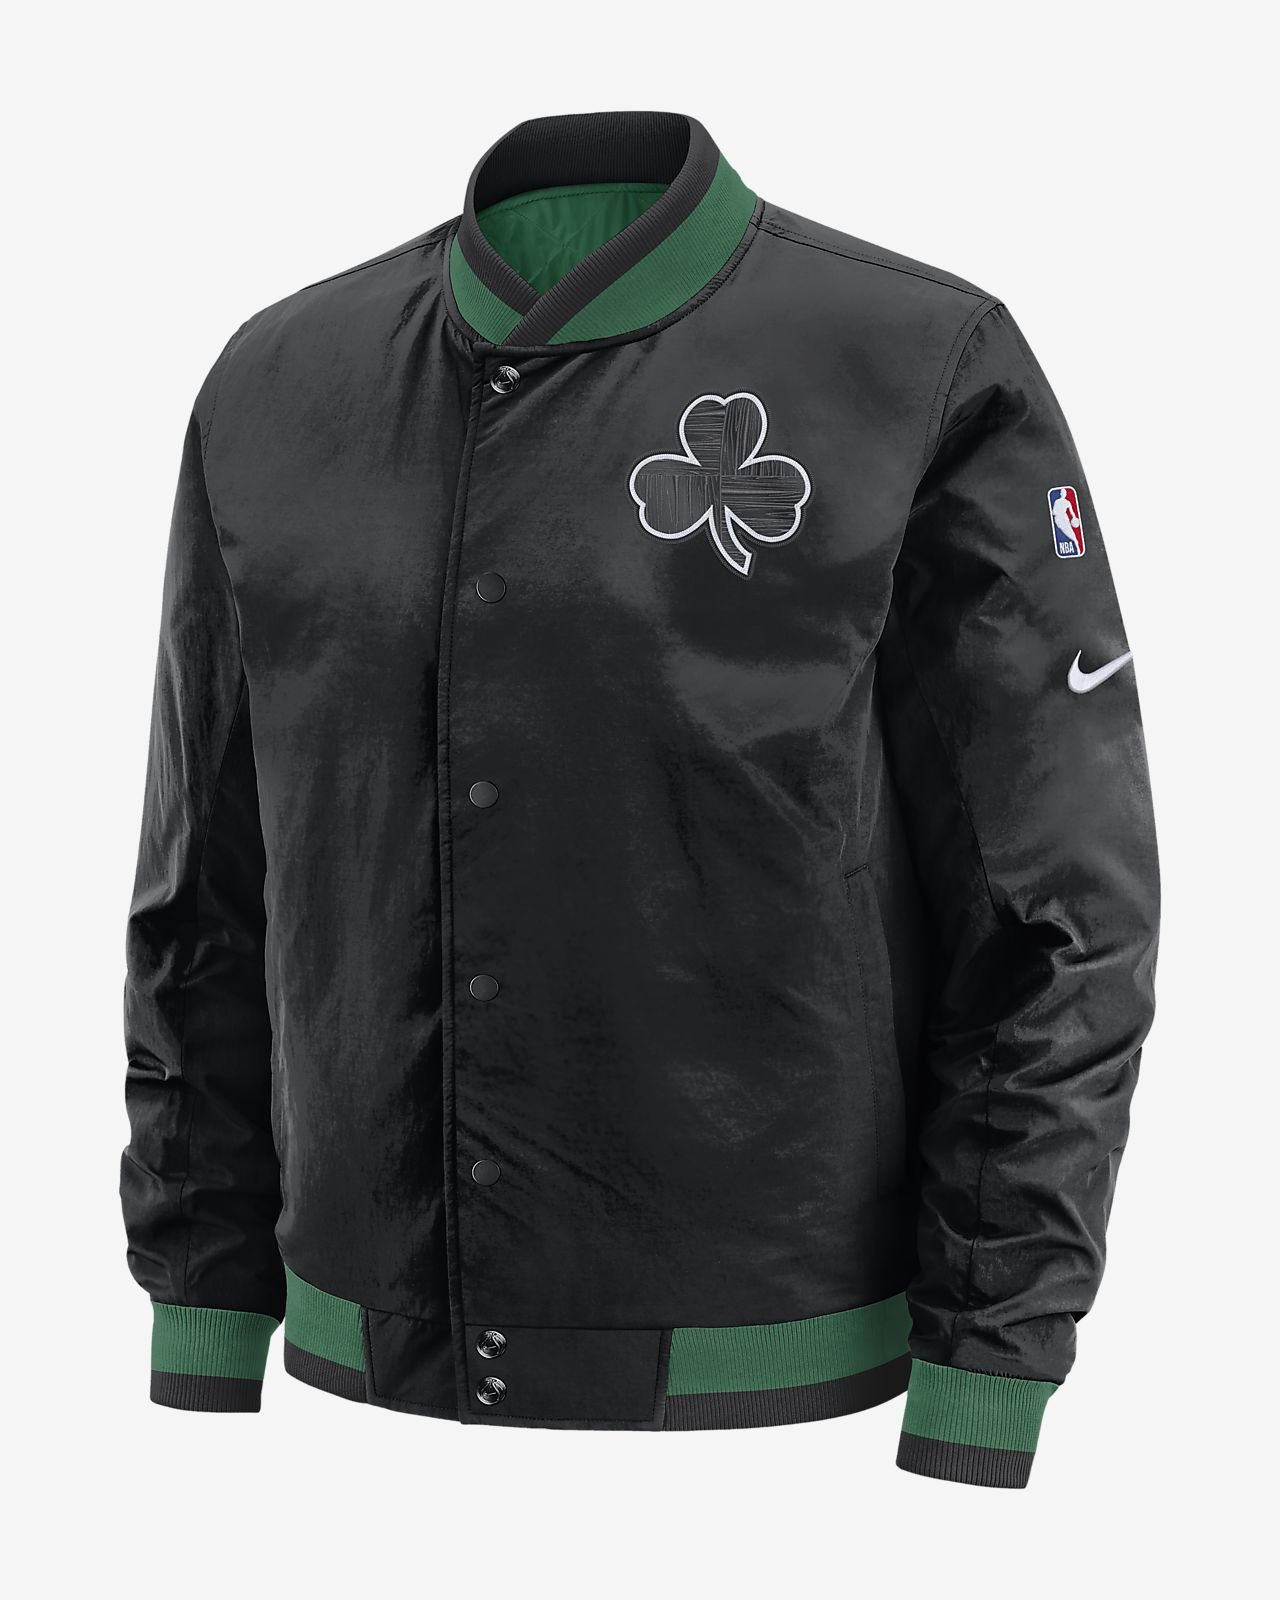 Boston Celtics Courtside Men's Nike NBA Reversible Jacket